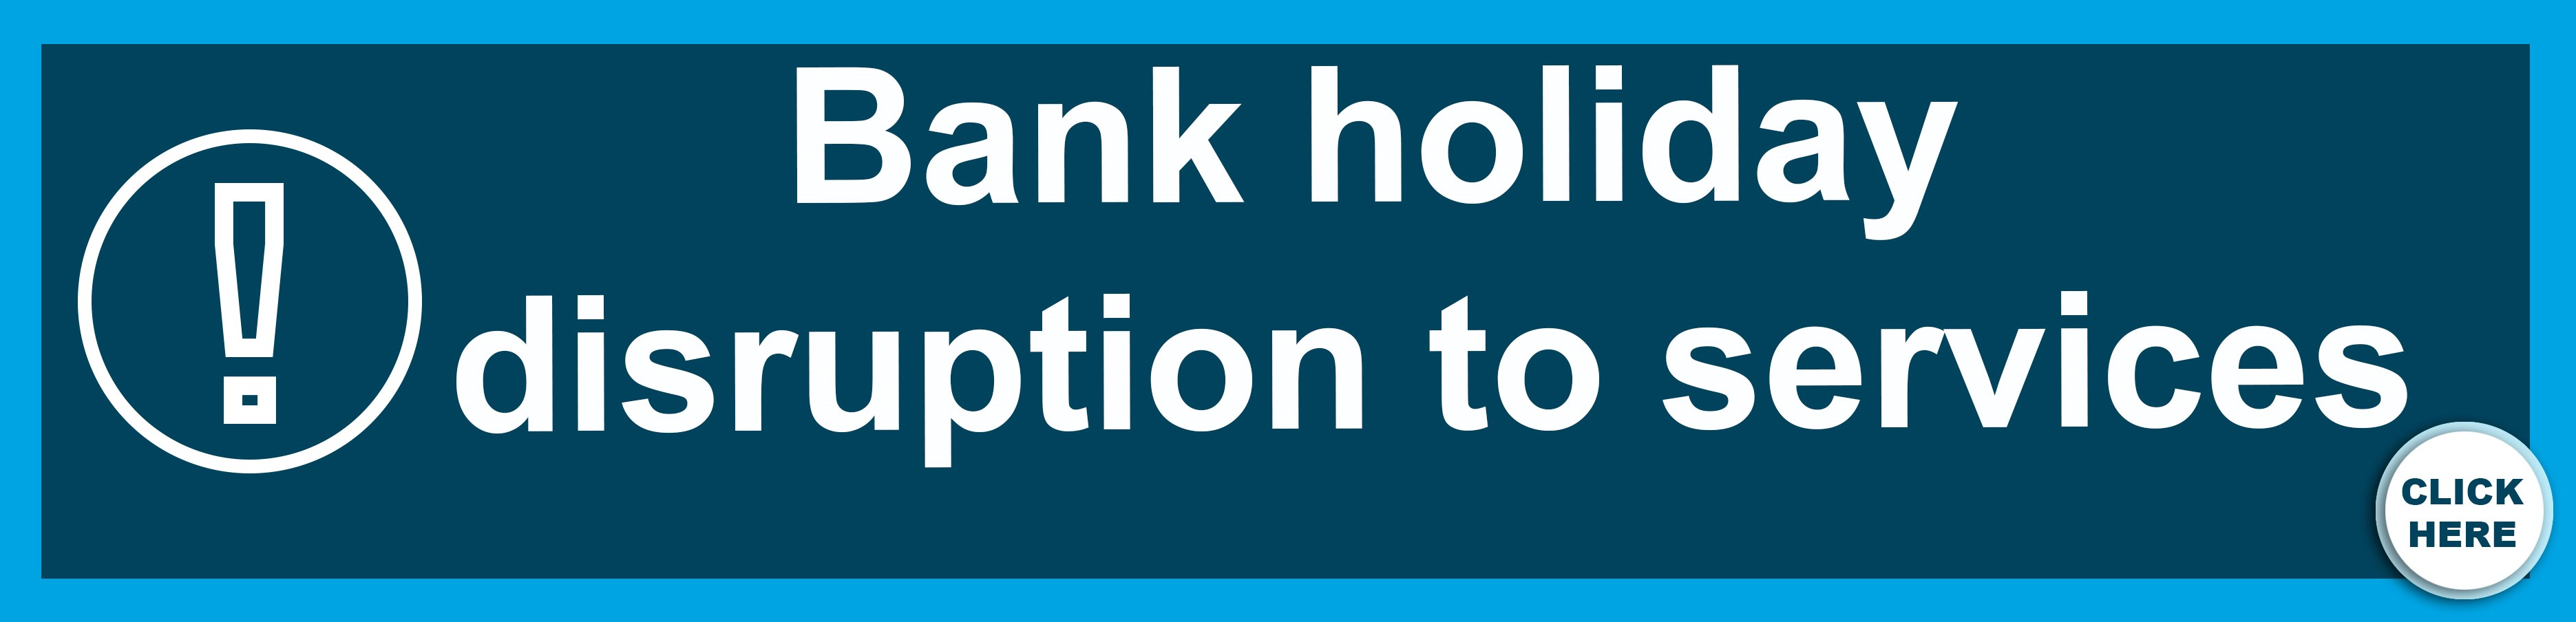 Easter bank holiday disruption to services